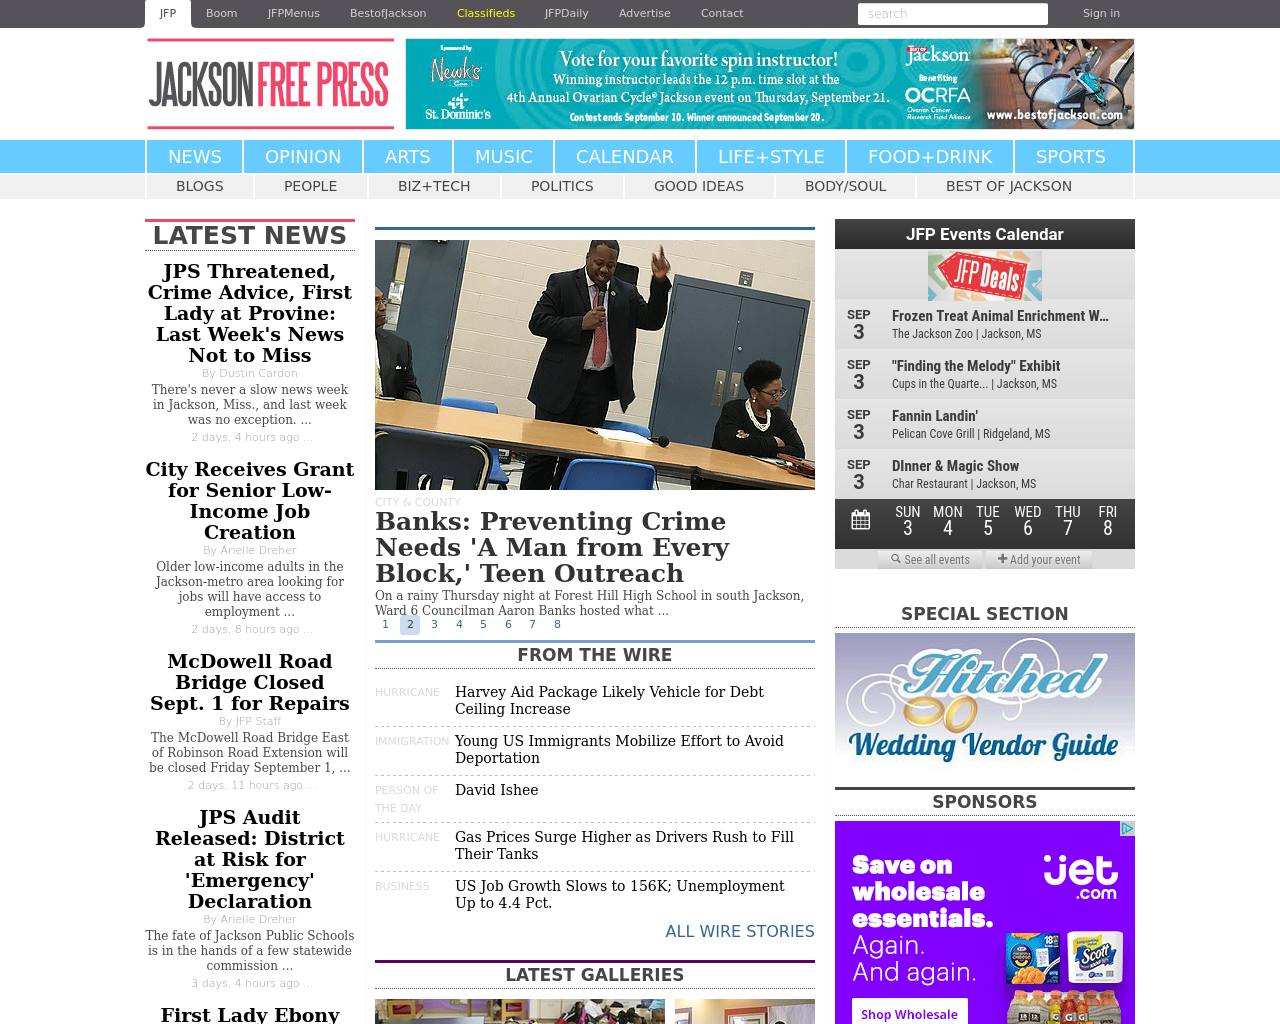 Jackson-FREE-Press-Advertising-Reviews-Pricing